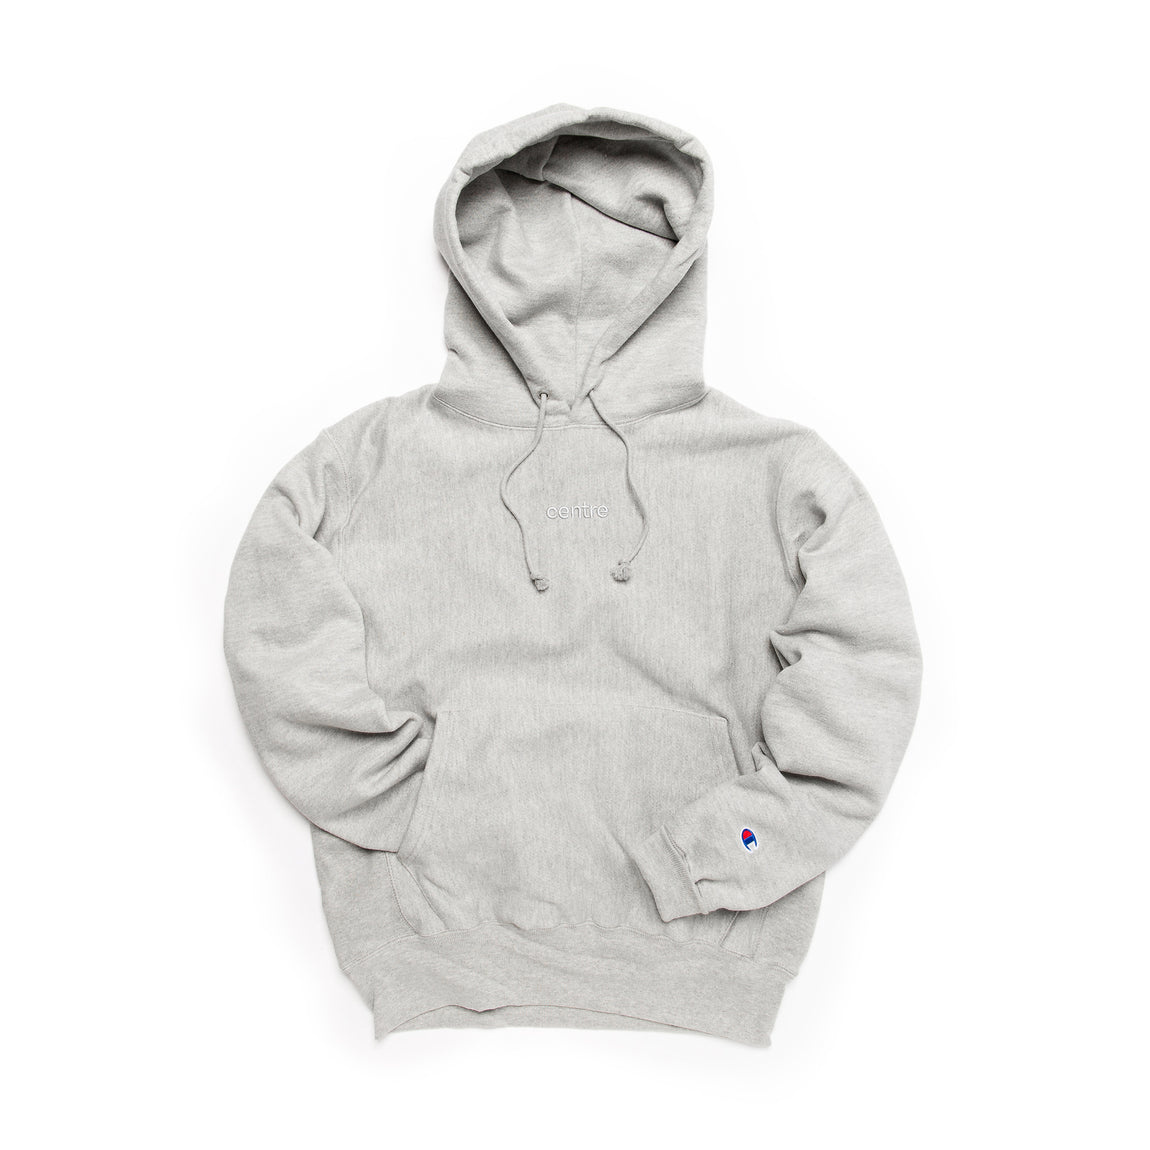 Centre Heavyweights Tonal Fleece Hoodie (Oxford Grey) - Centre Heavyweights Tonal Fleece Hoodie (Oxford Grey) -